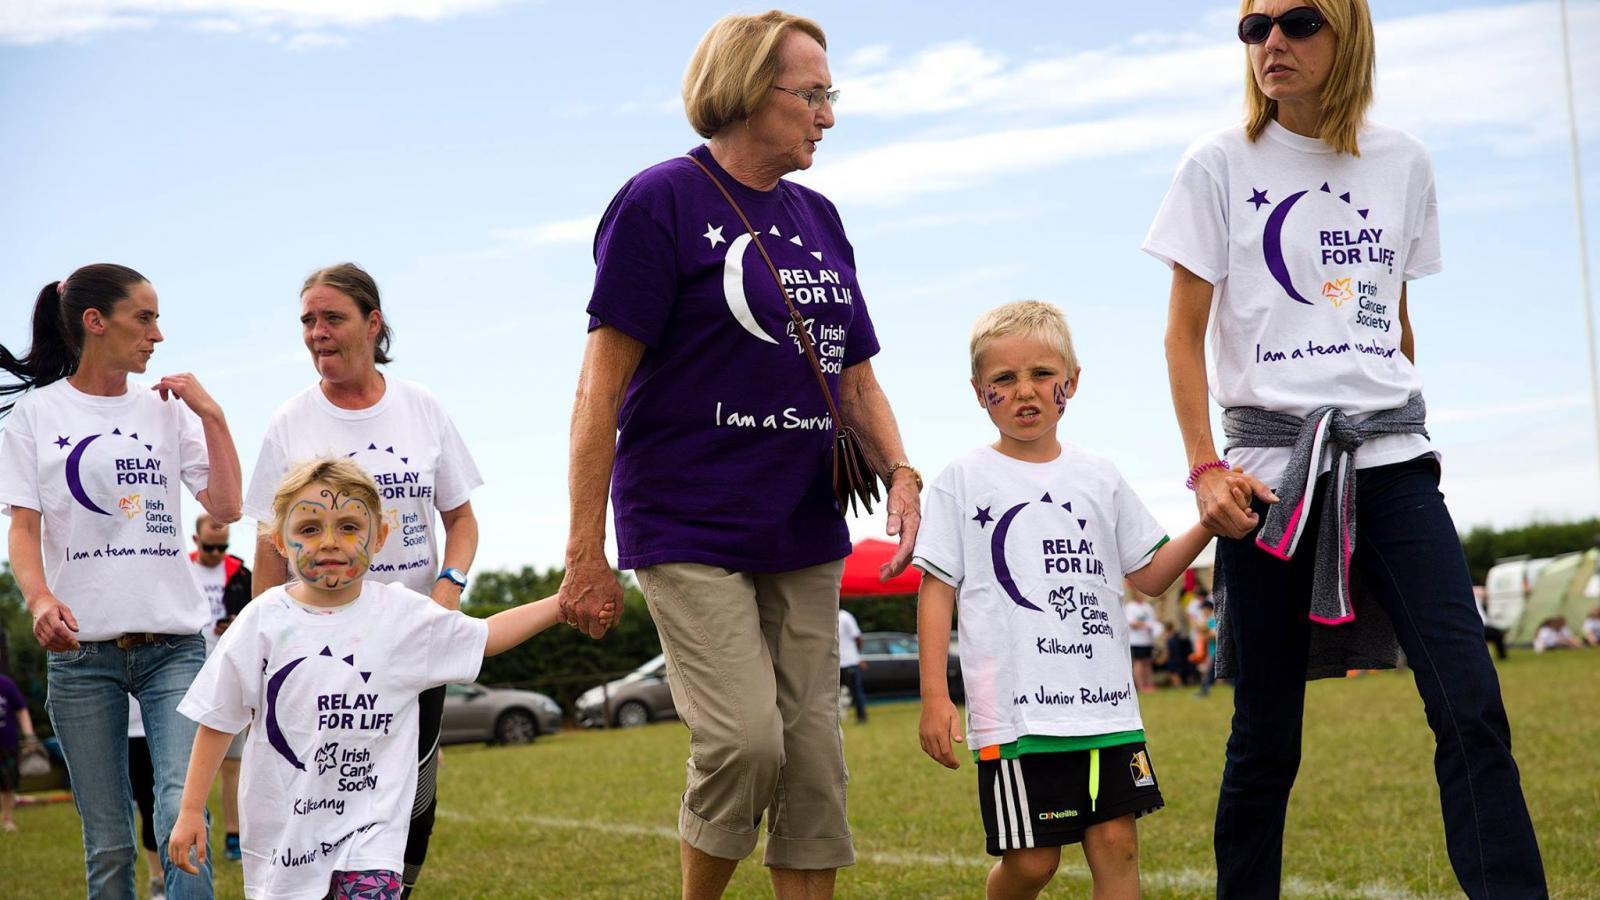 Grandparents walking with children at Relay For Life Kilkenny